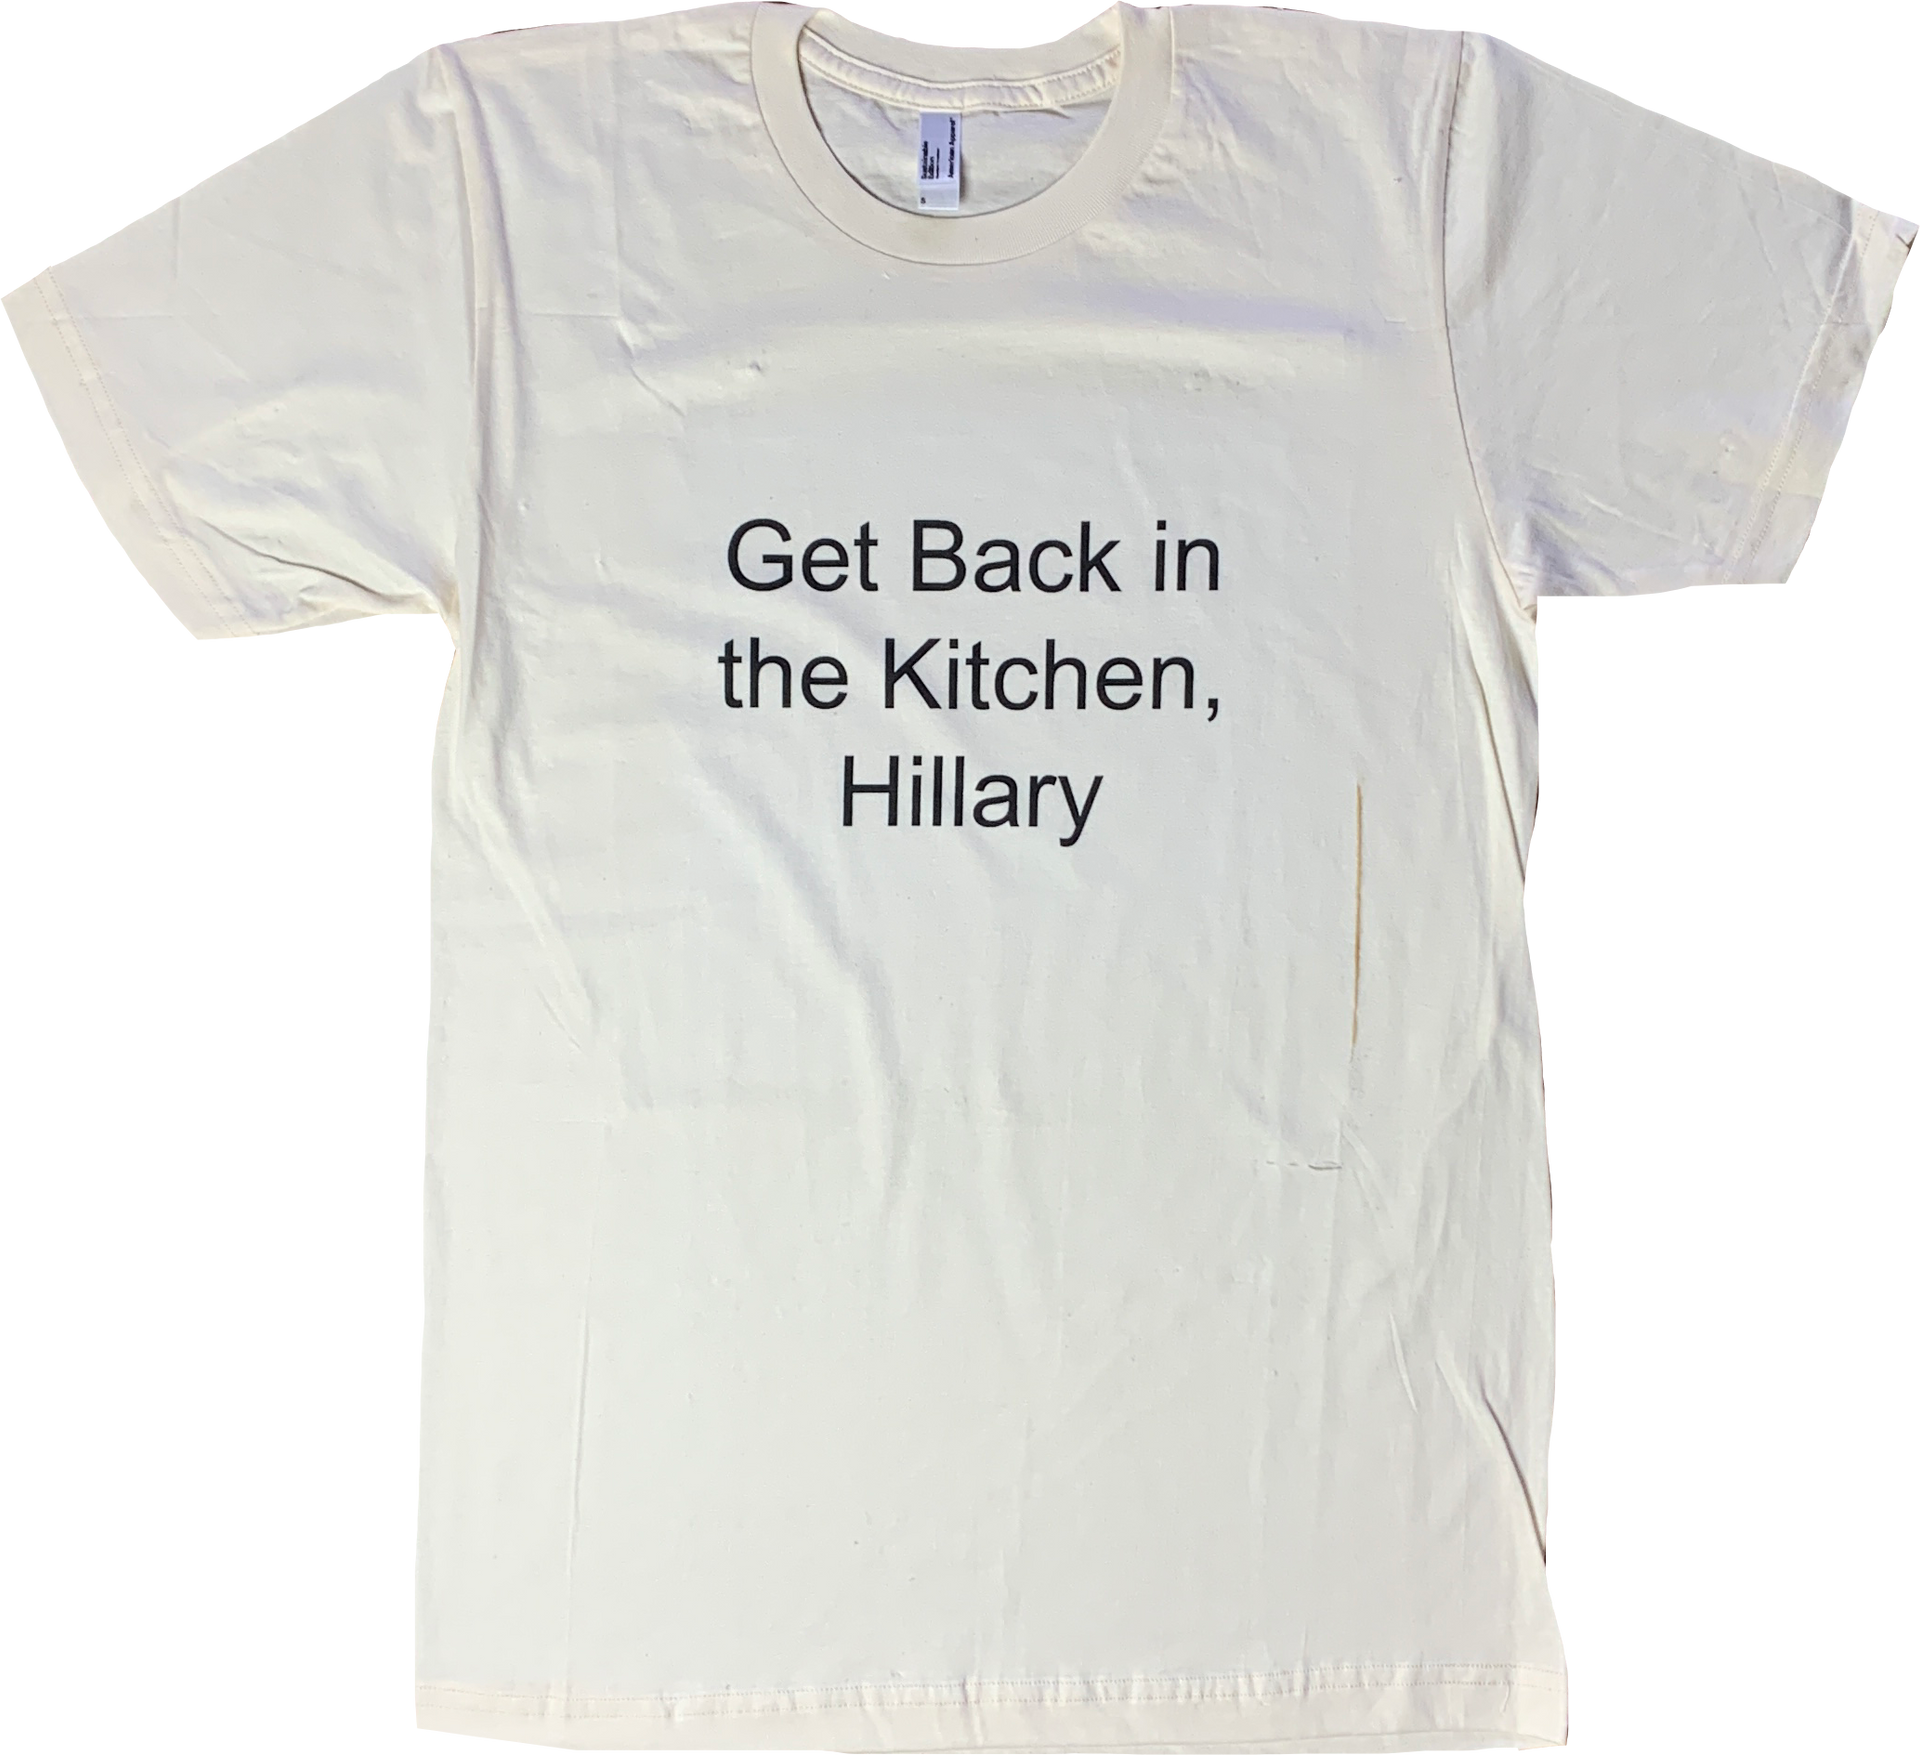 Get Back in the Kitchen, Hillary